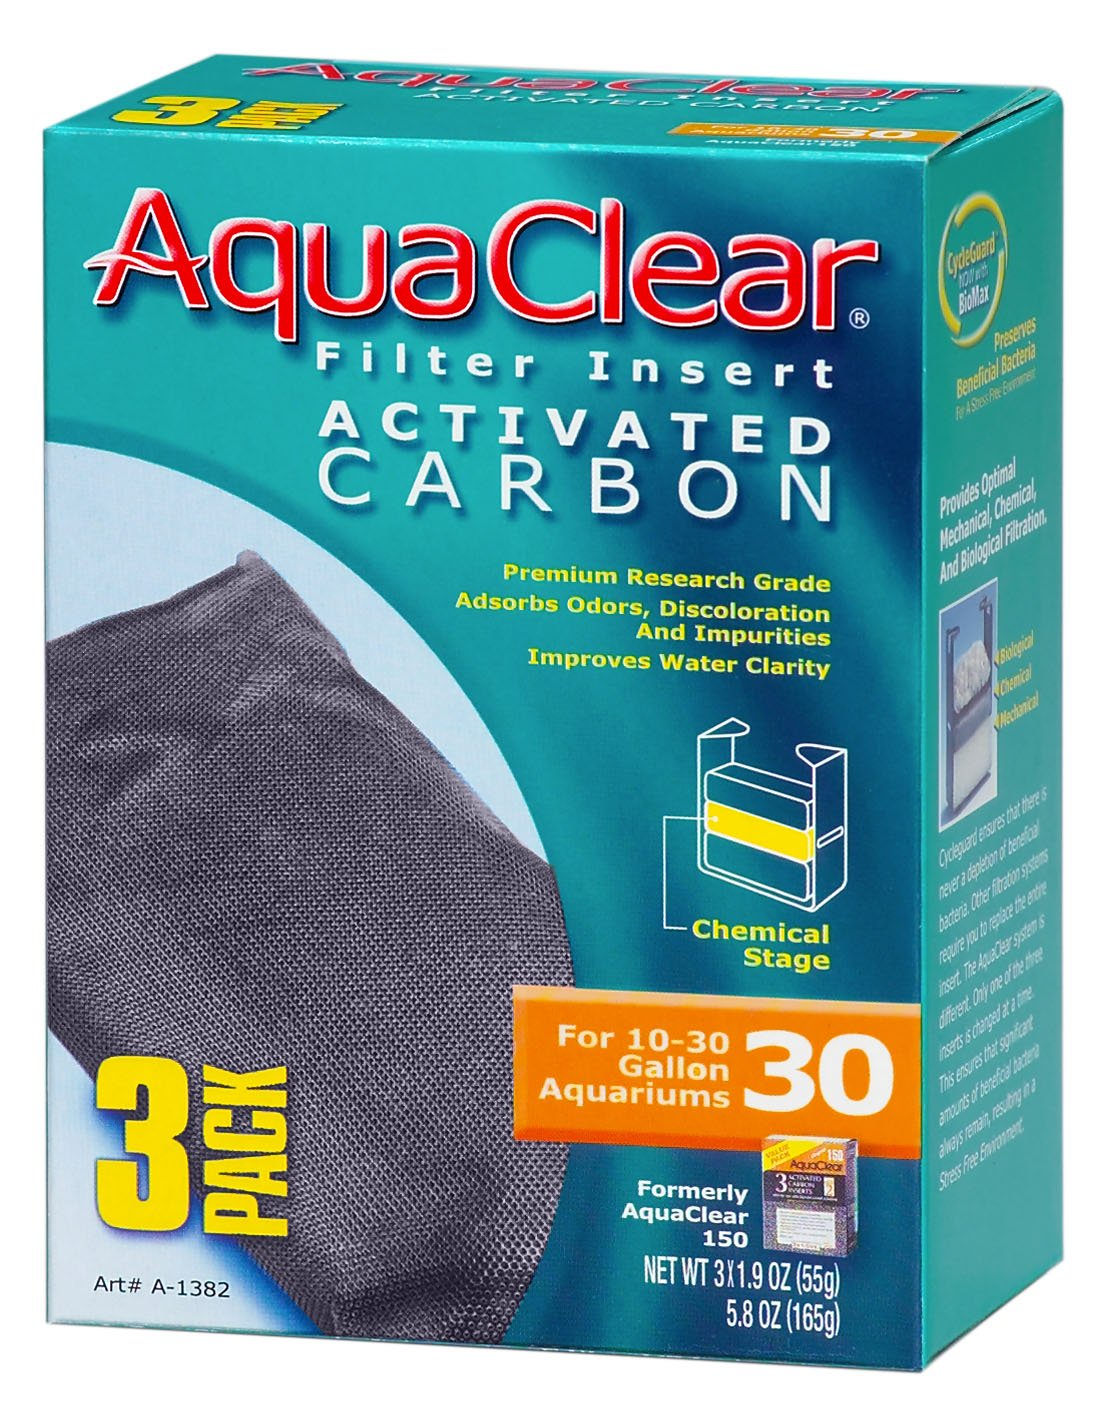 Aquaclear Activated Carbon Insert, 30-Gallon Aquariums, 3-Pack Rolf C. Hagen (USA) Corp. A1382